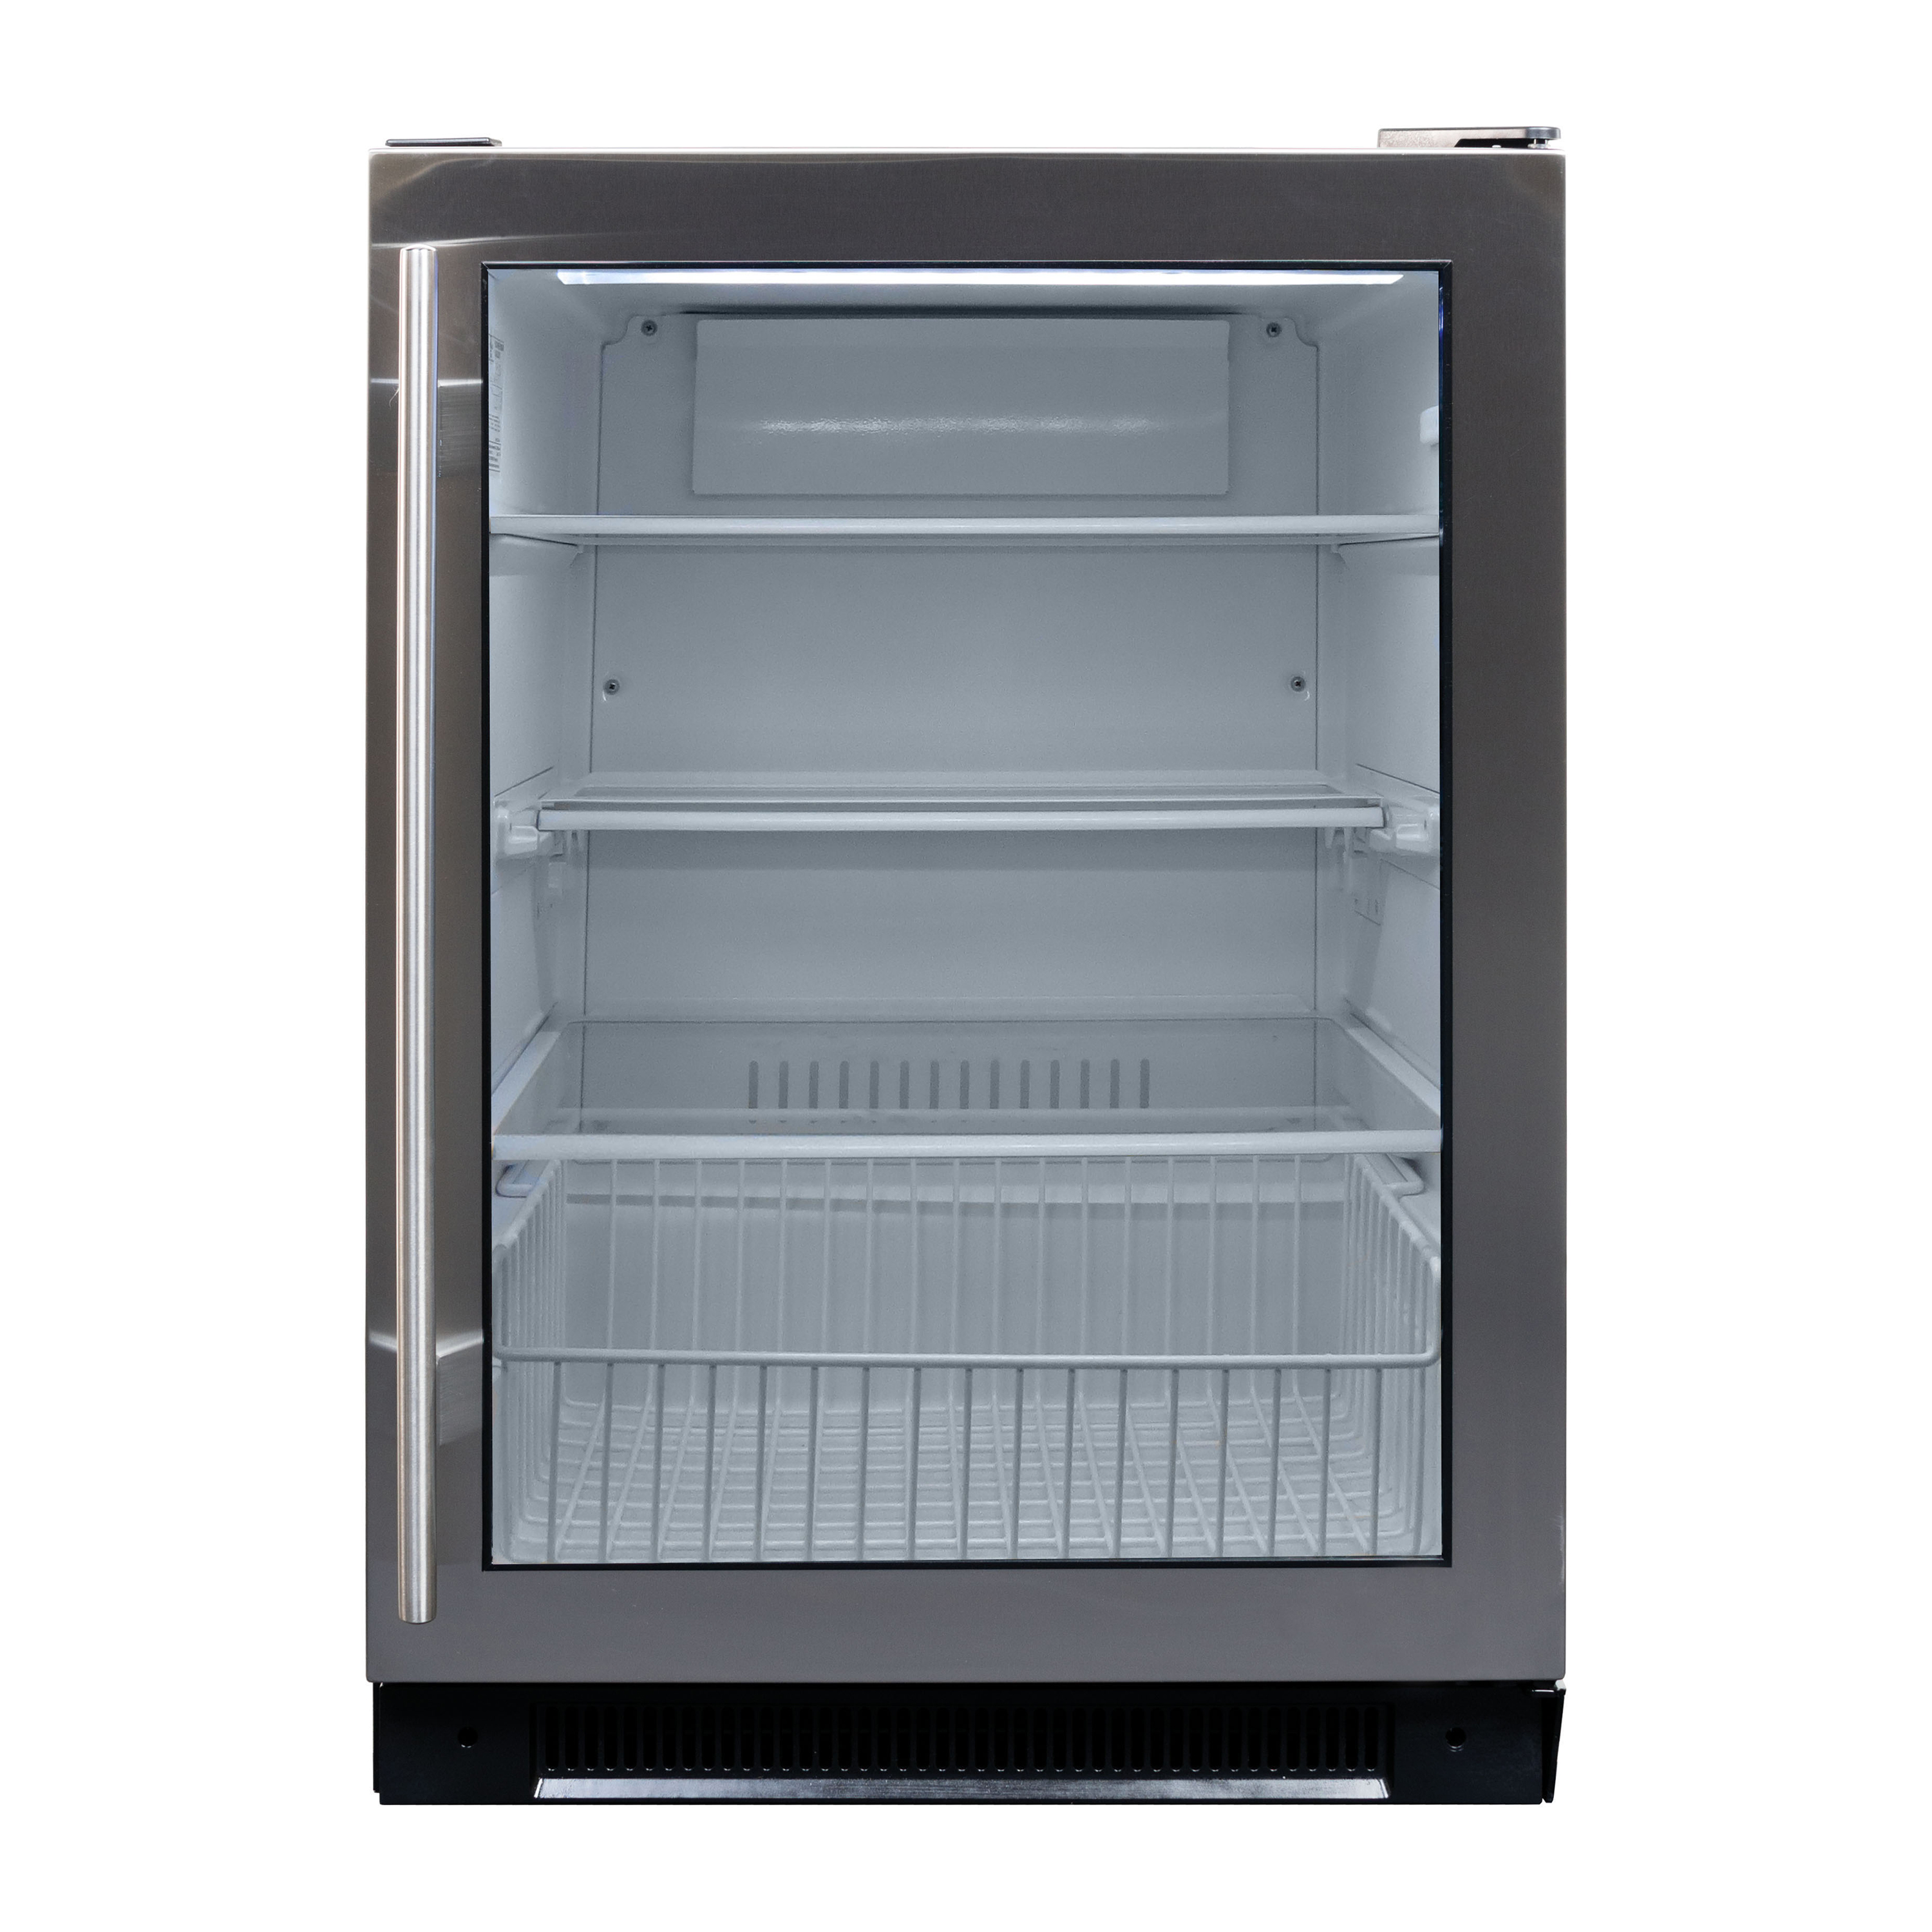 Model: BC100GS | 150-Can Capacity Built-in Beverage Center